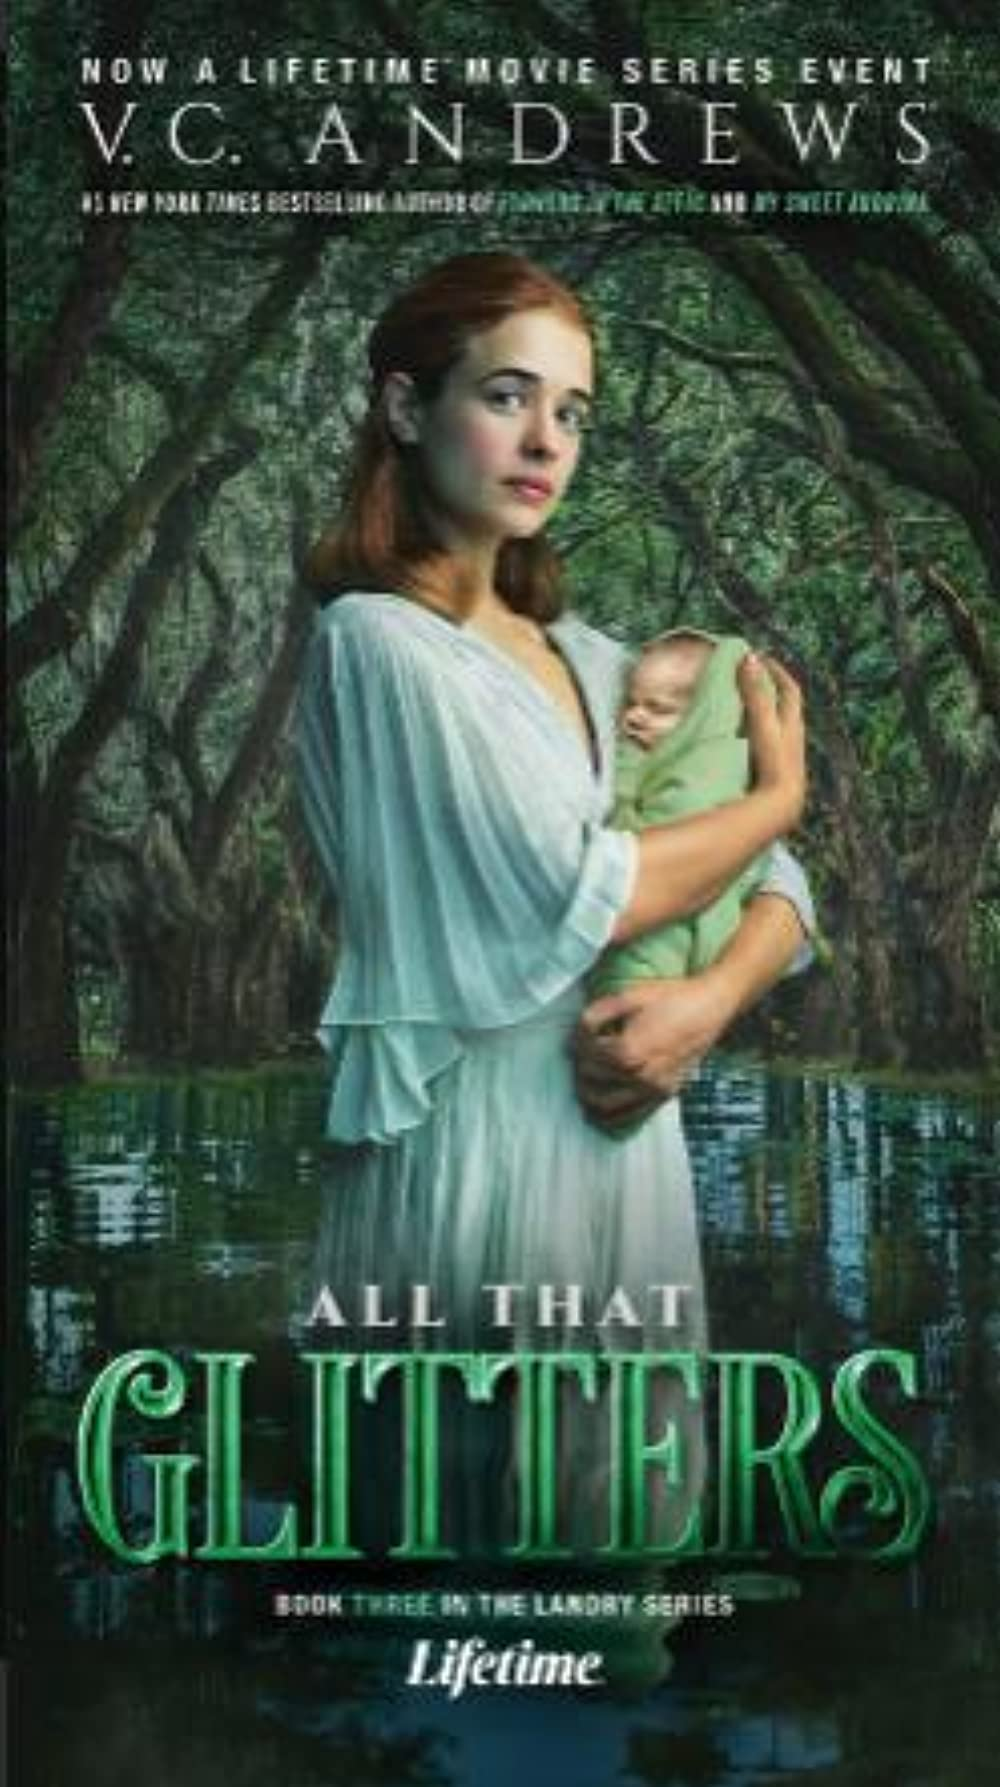 Watch V.C. Andrews' All That Glitters Online